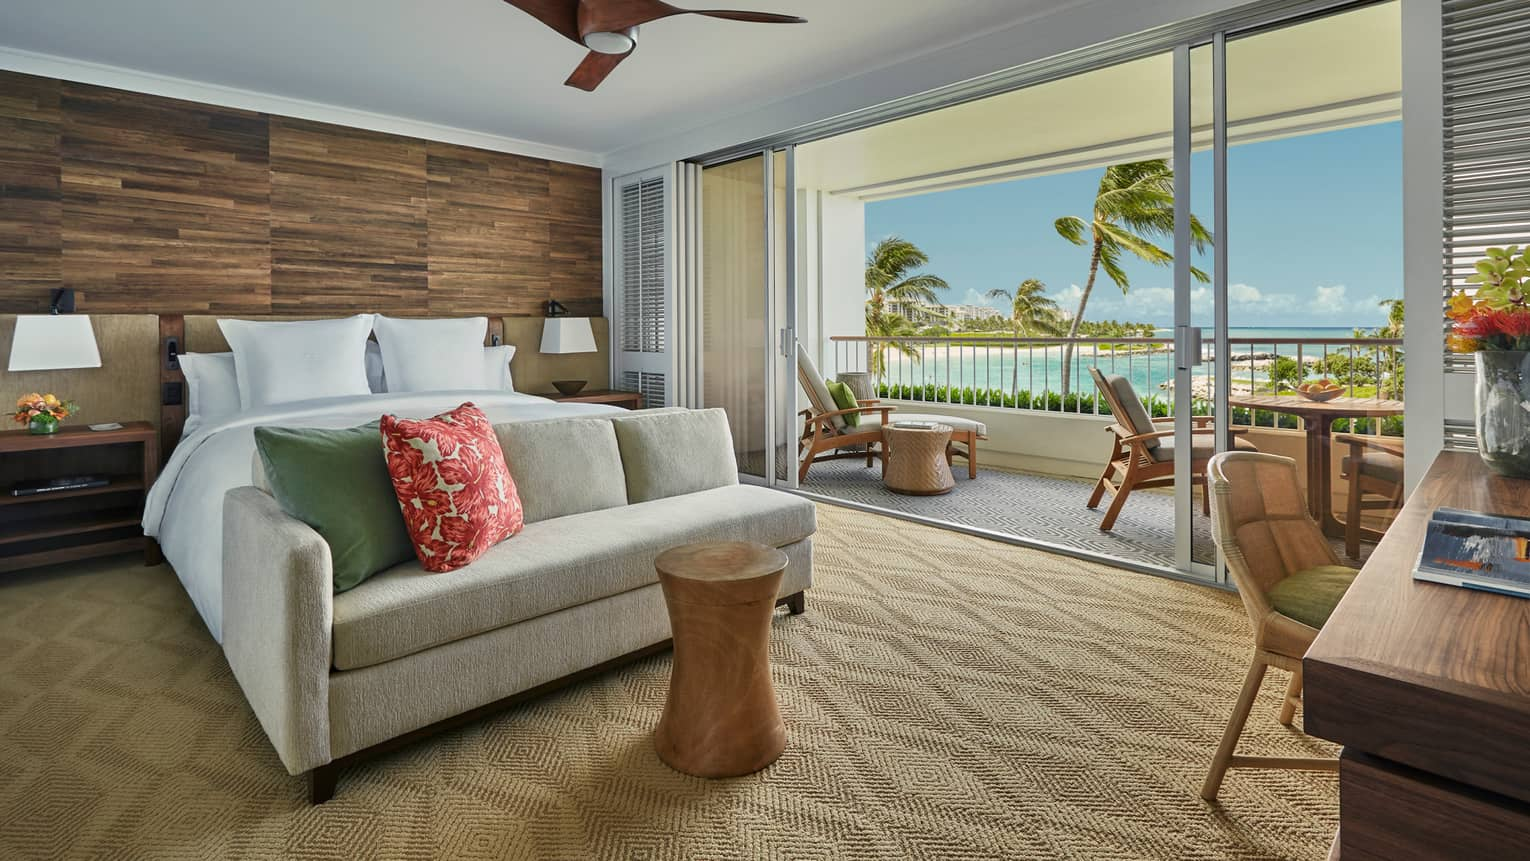 Prime Corner Oceanfront Room loveseat at foot of bed against wood grain wall, balcony wall